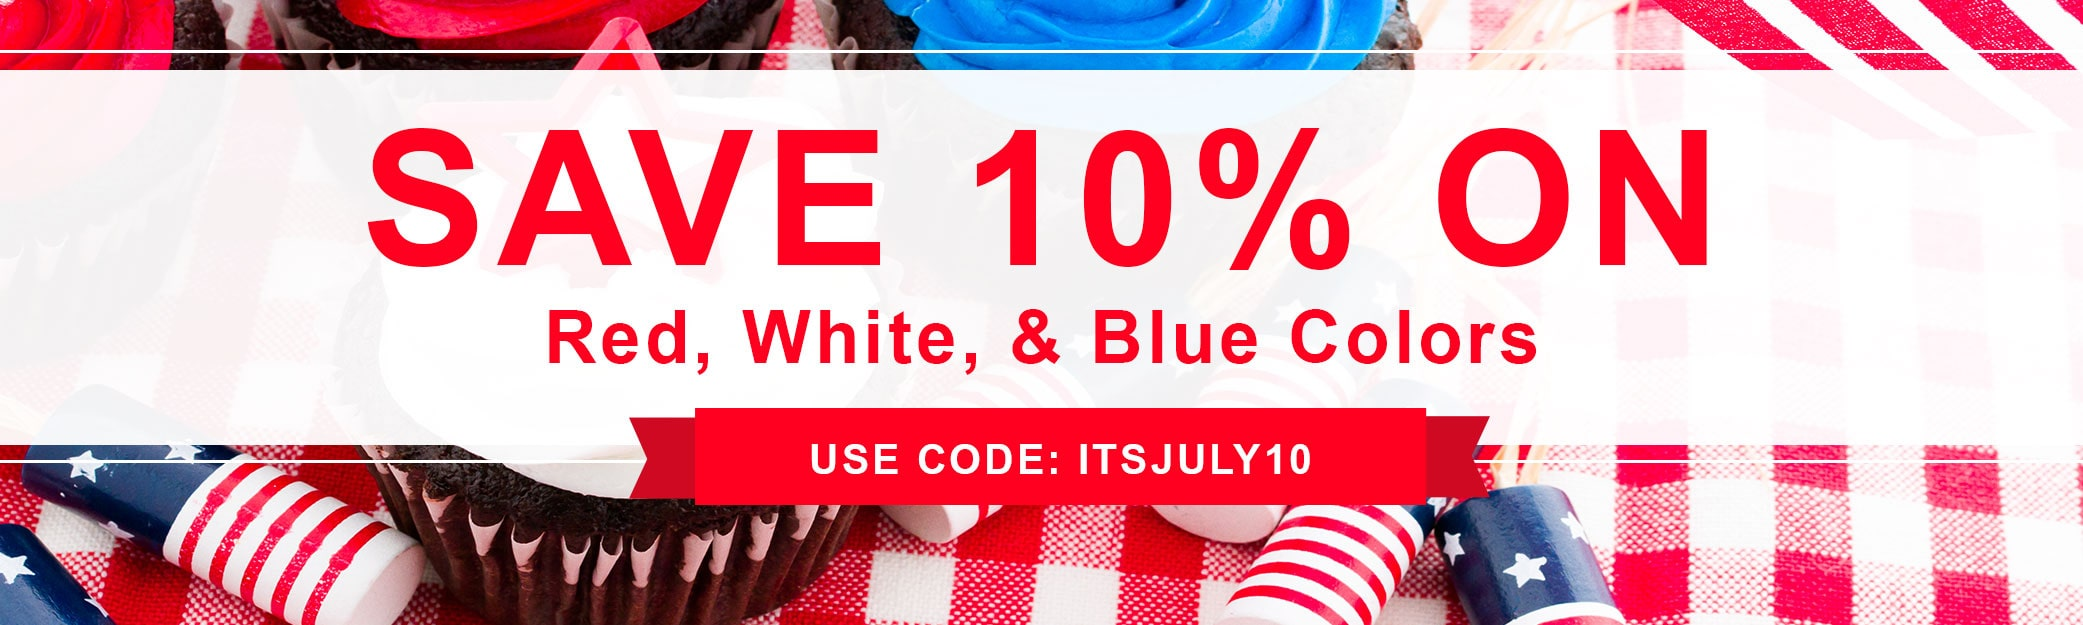 10% off Red, White, and Blue Colors Collection